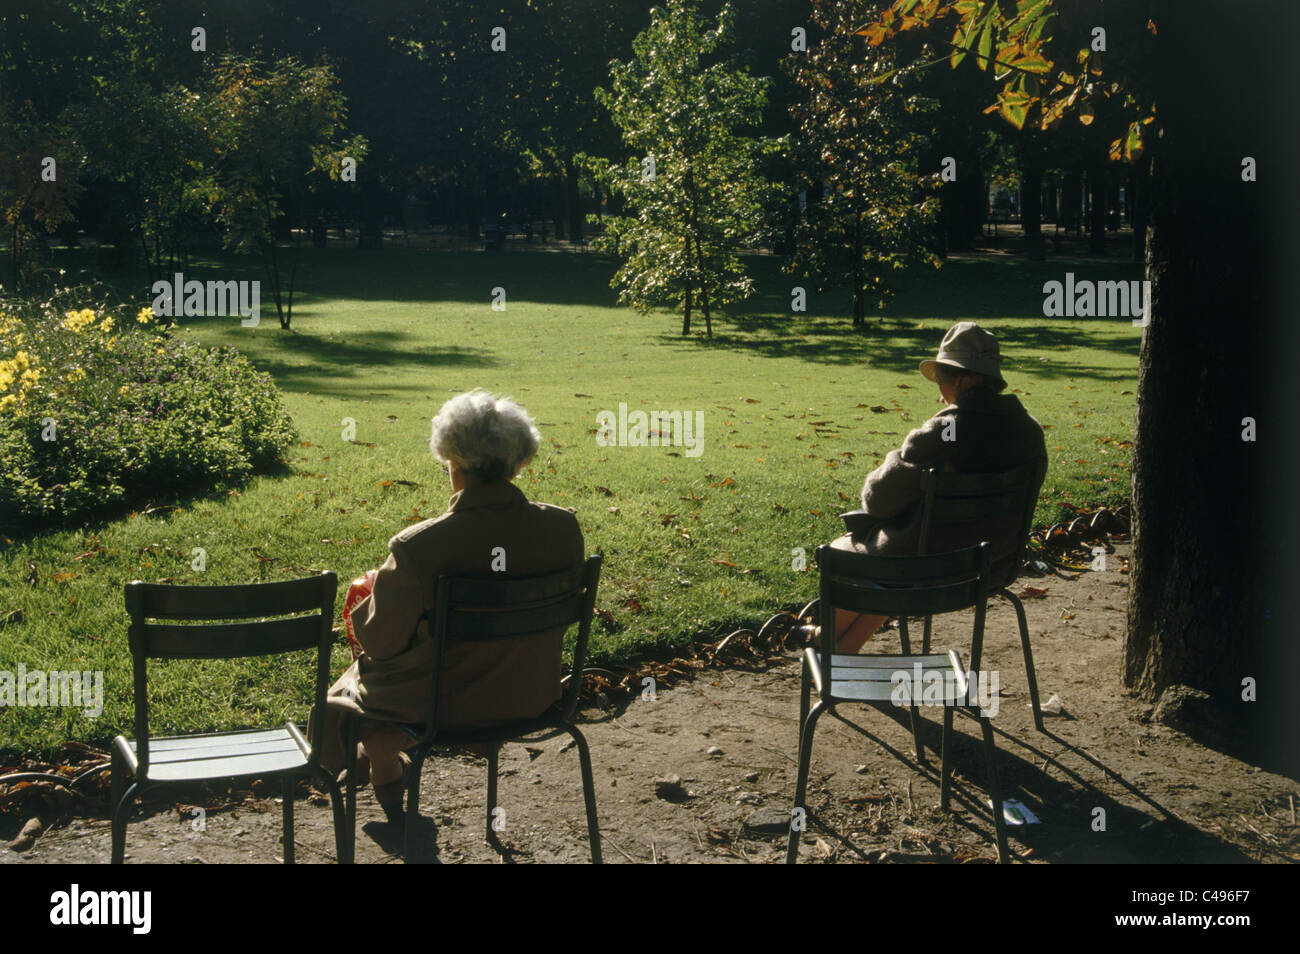 Photograph of two old people csitting in a green park in Paris - Stock Image